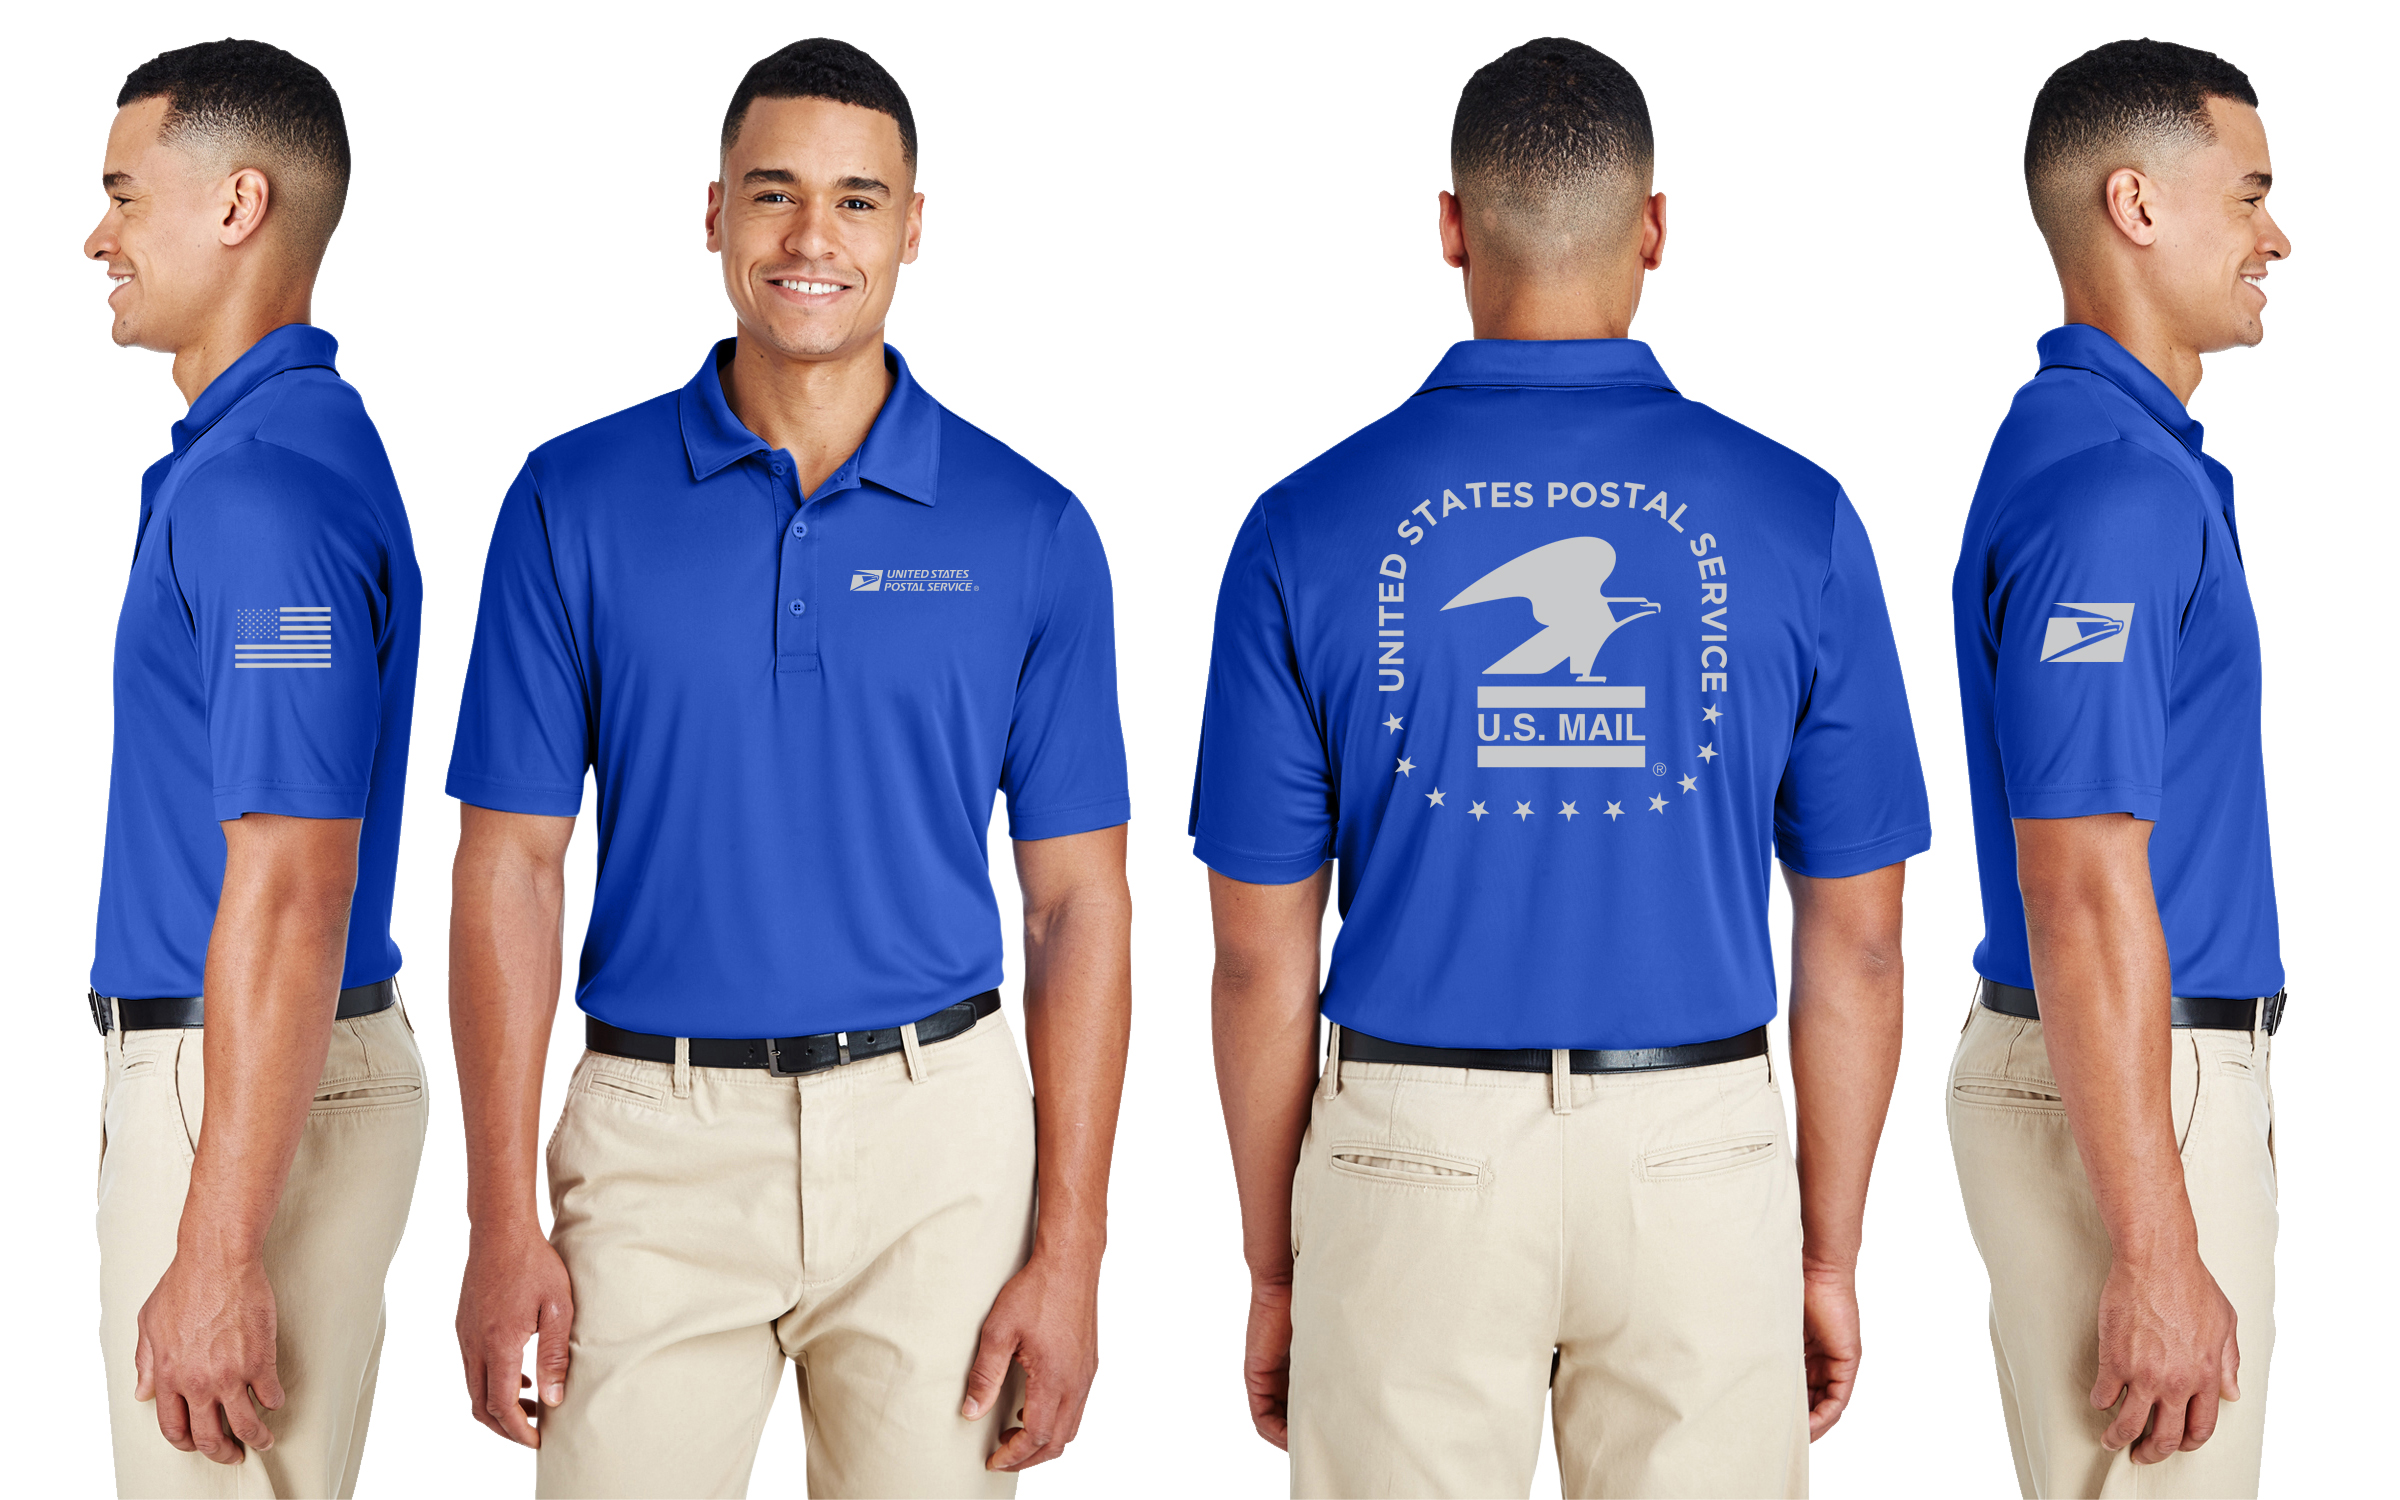 Usps Performance Shirt Polo 407 Prints